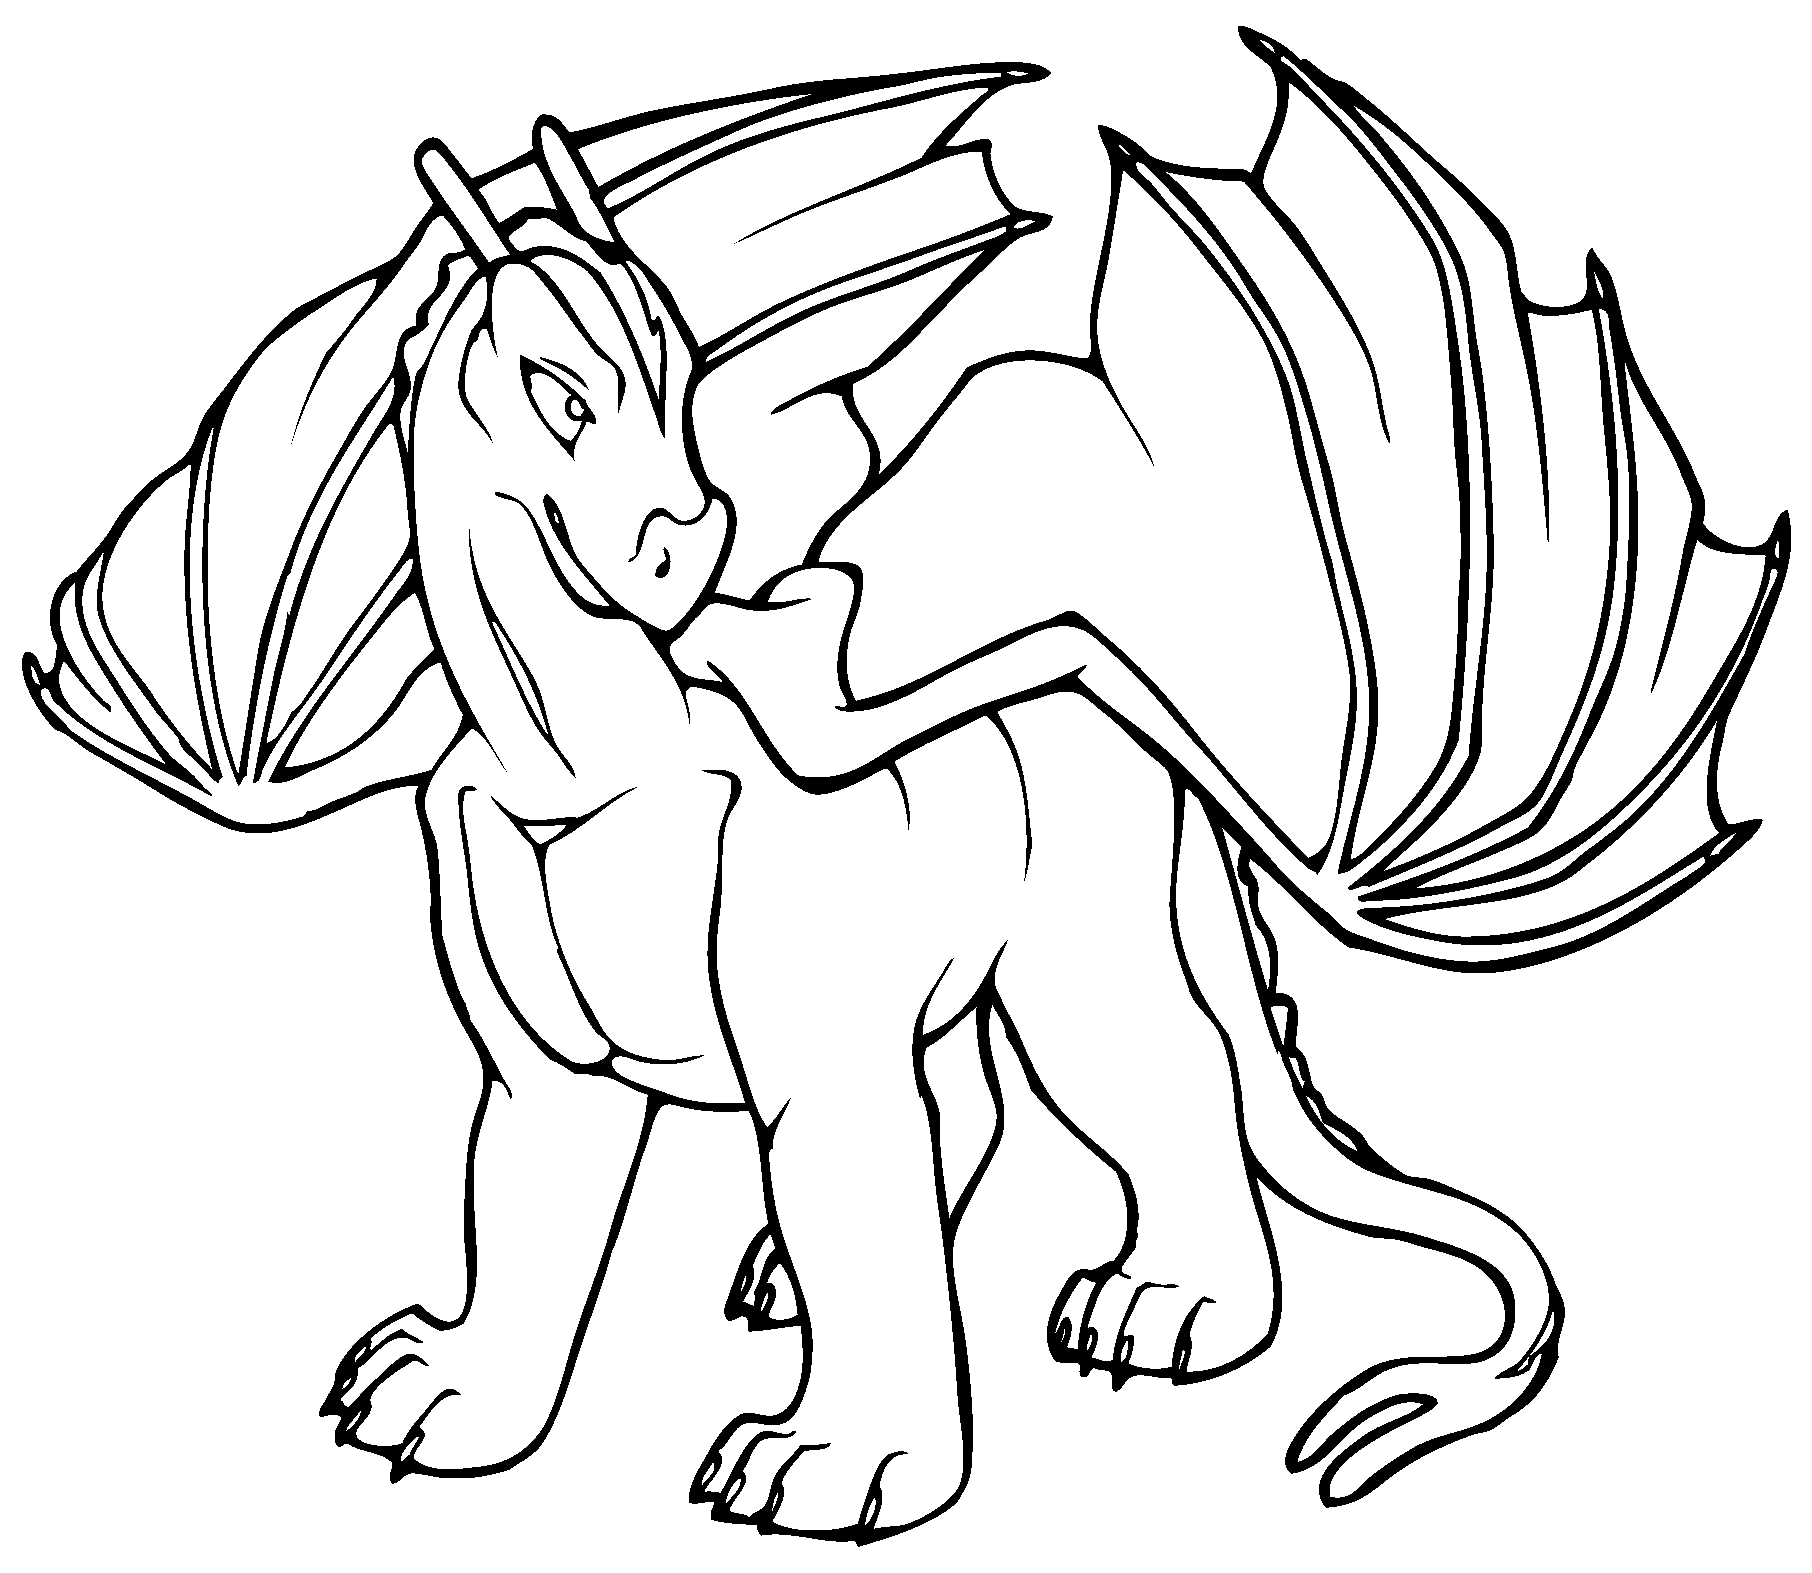 Free Printable Dragon Coloring Pages For Kids in 2018 | lettas ...